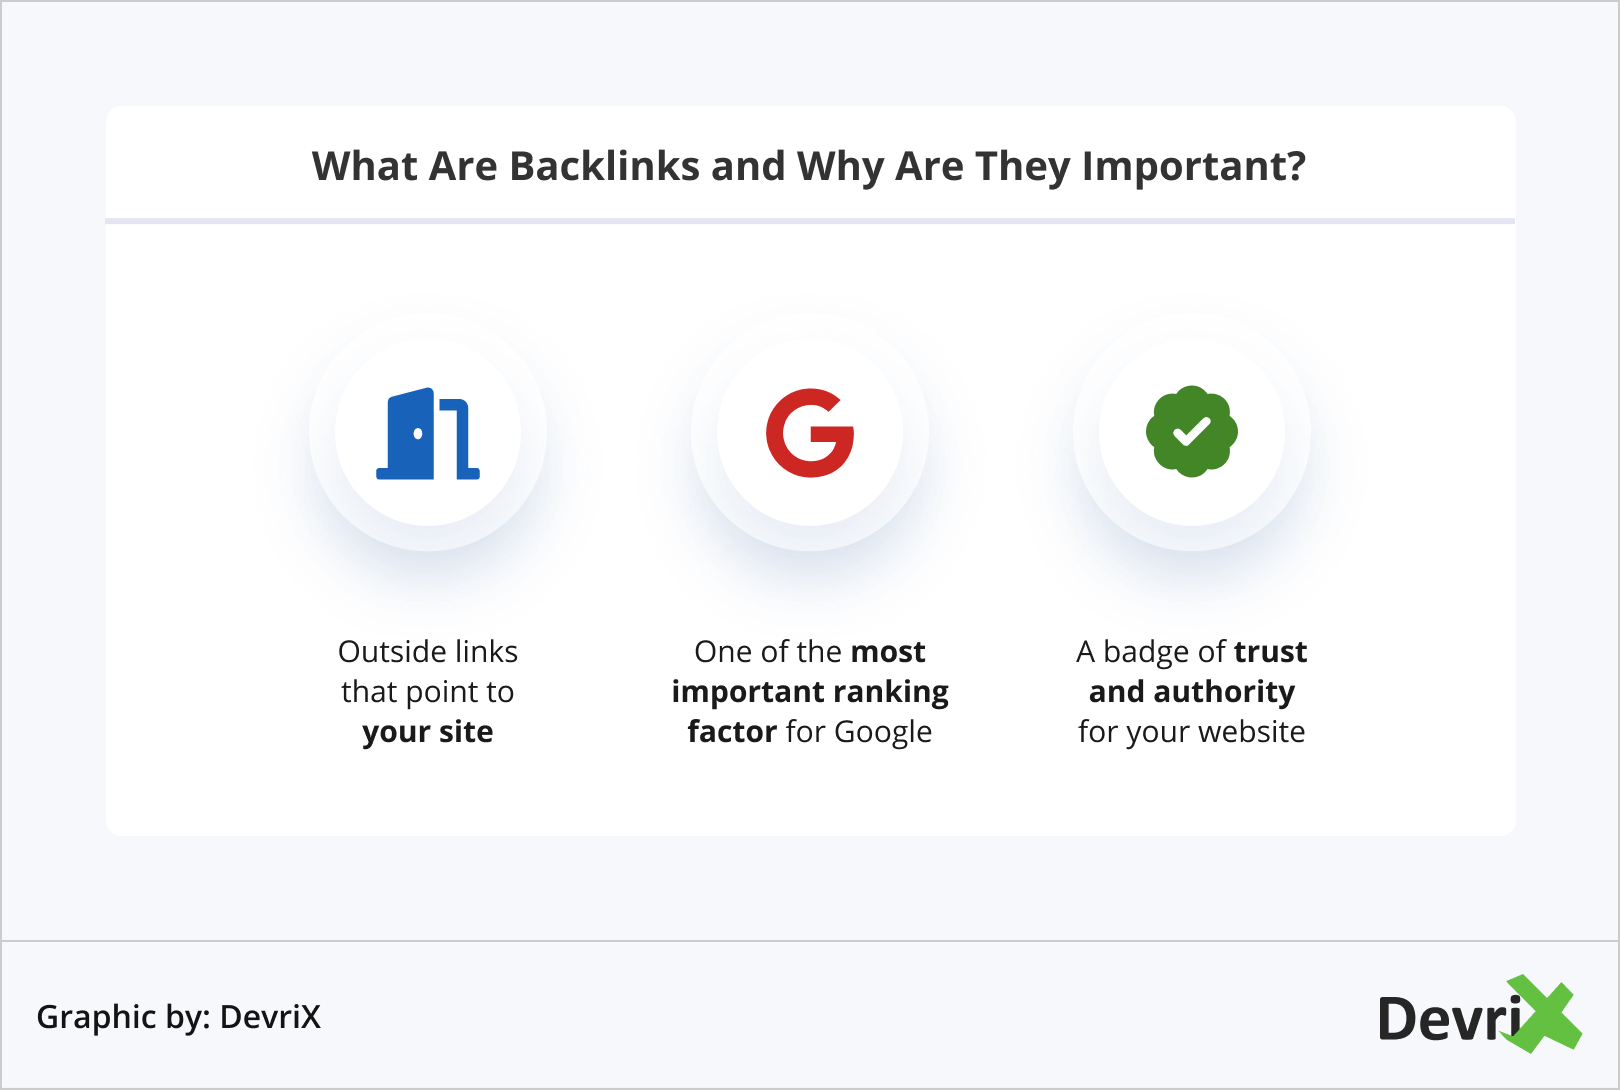 What Are Backlinks and Why Are They Important